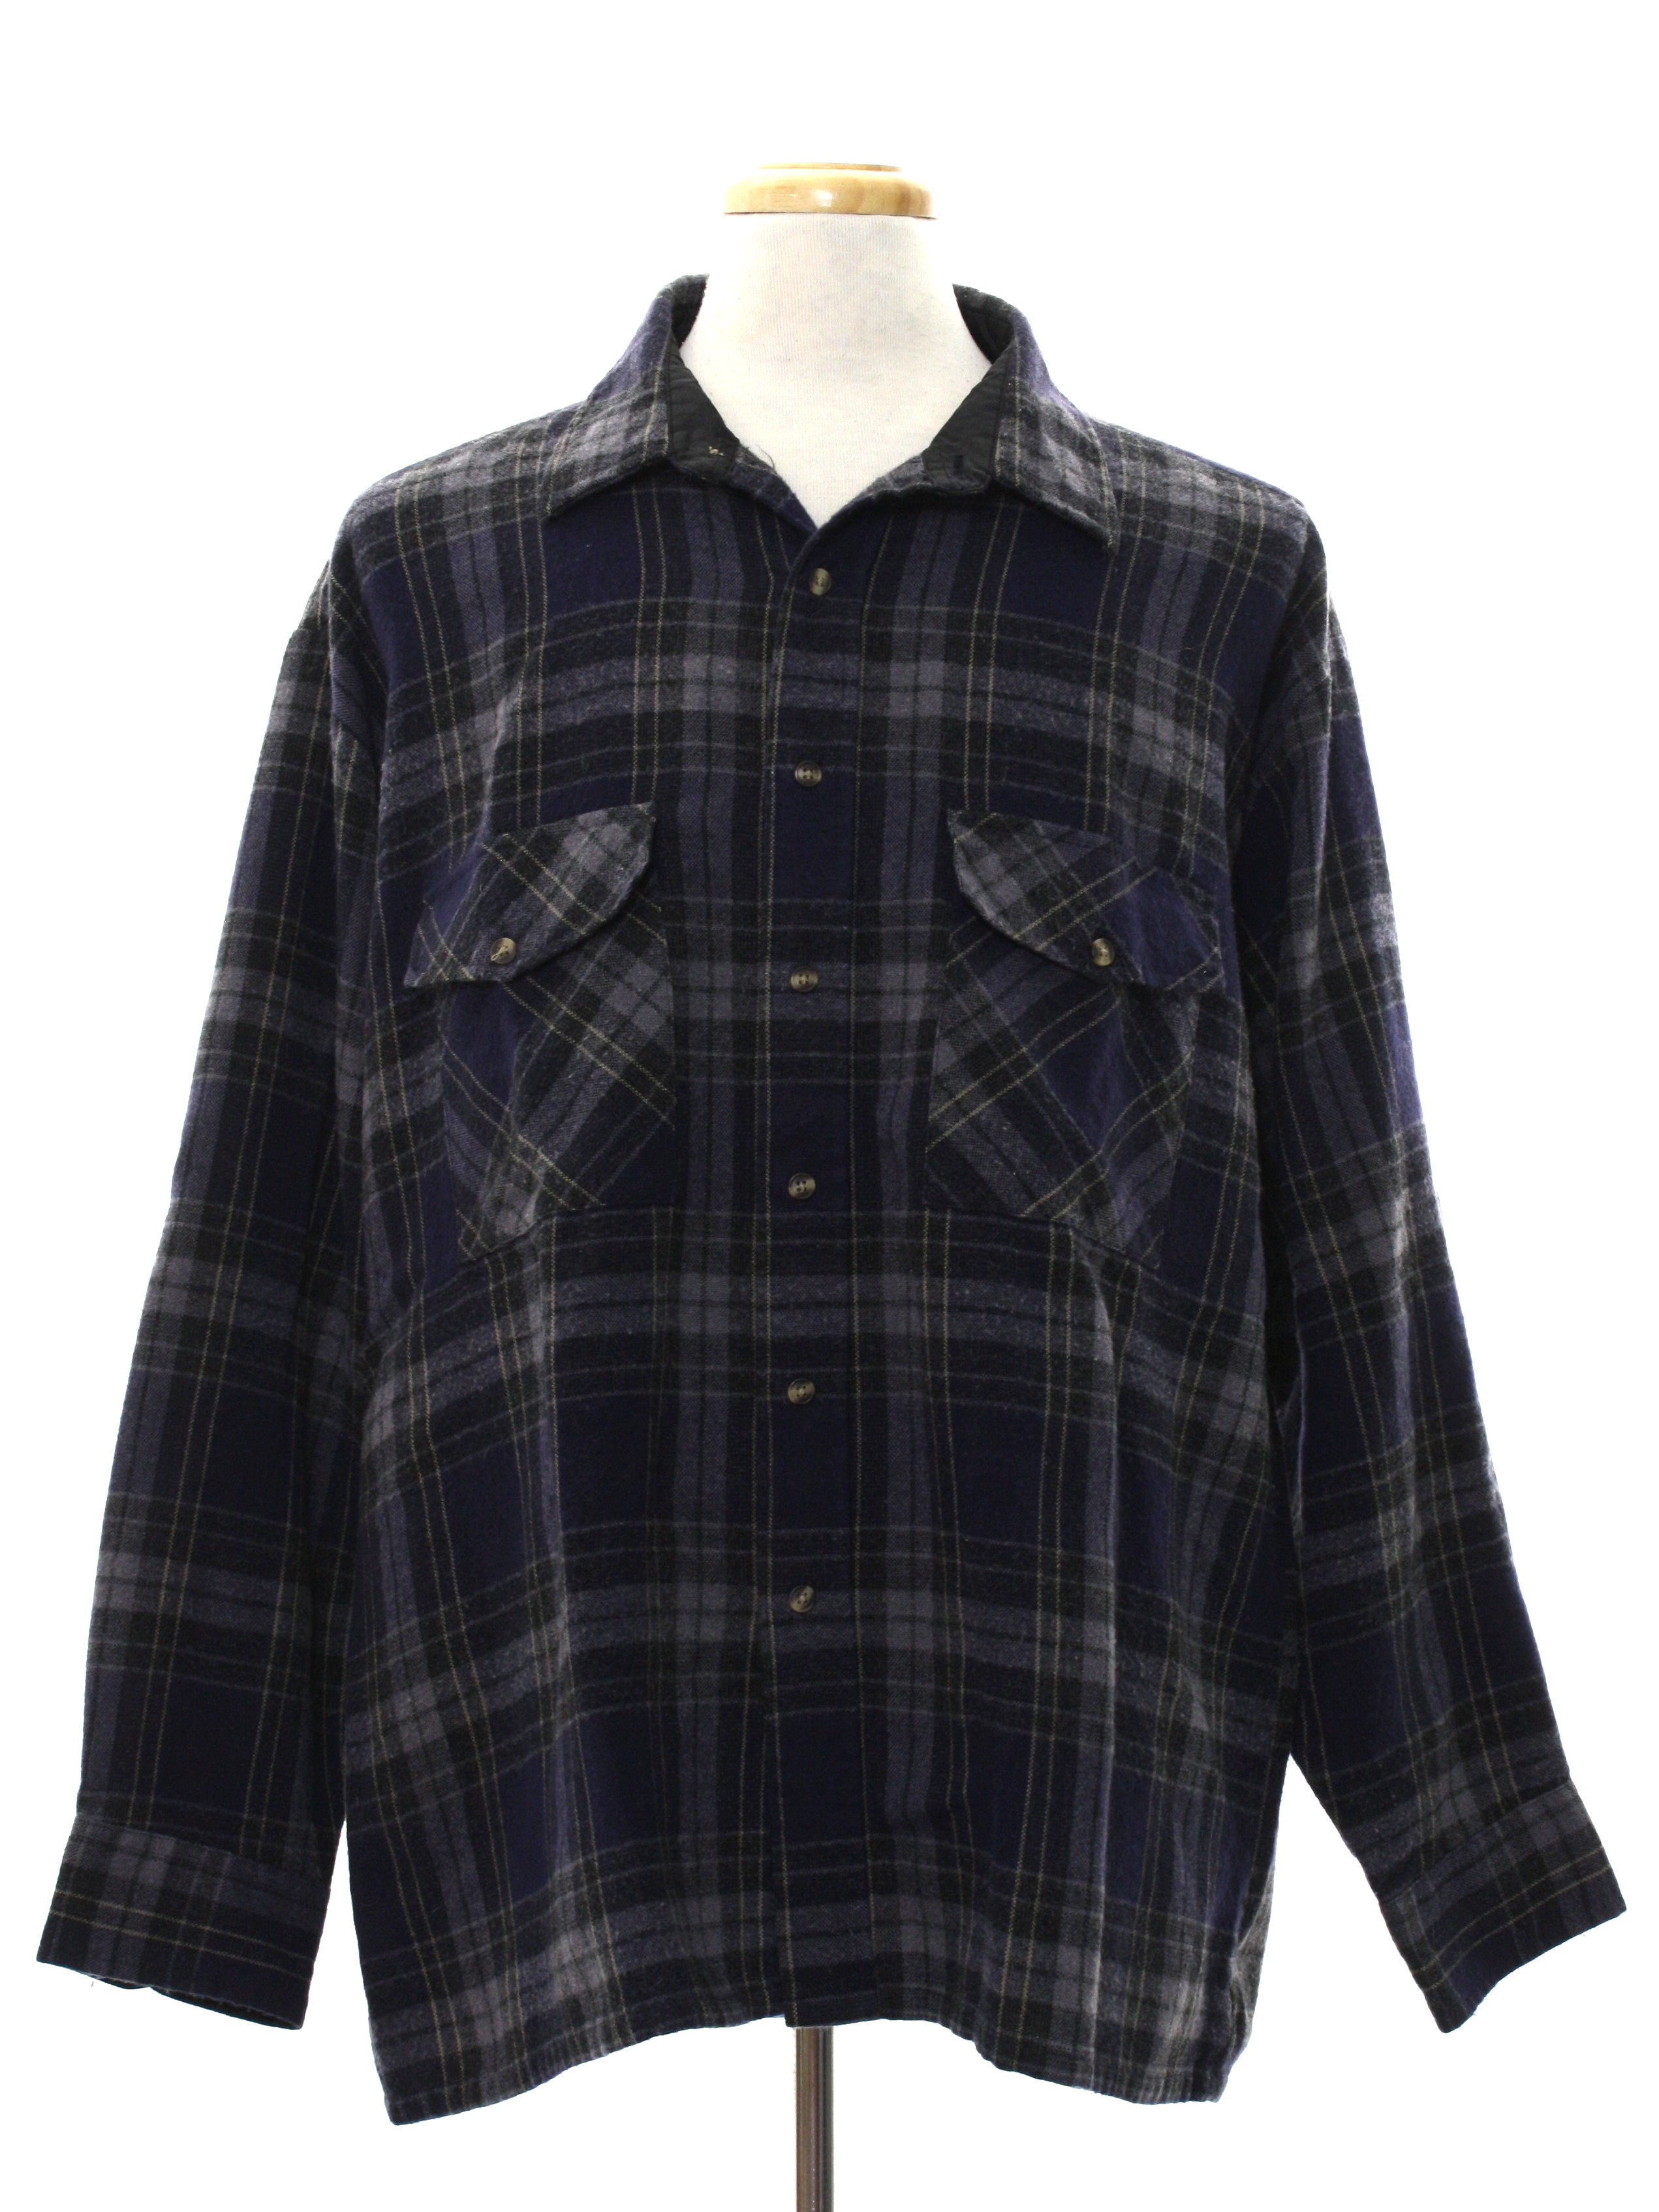 80 39 s vintage shirt late 80s or early 90s consensus for Cotton polyester flannel shirts